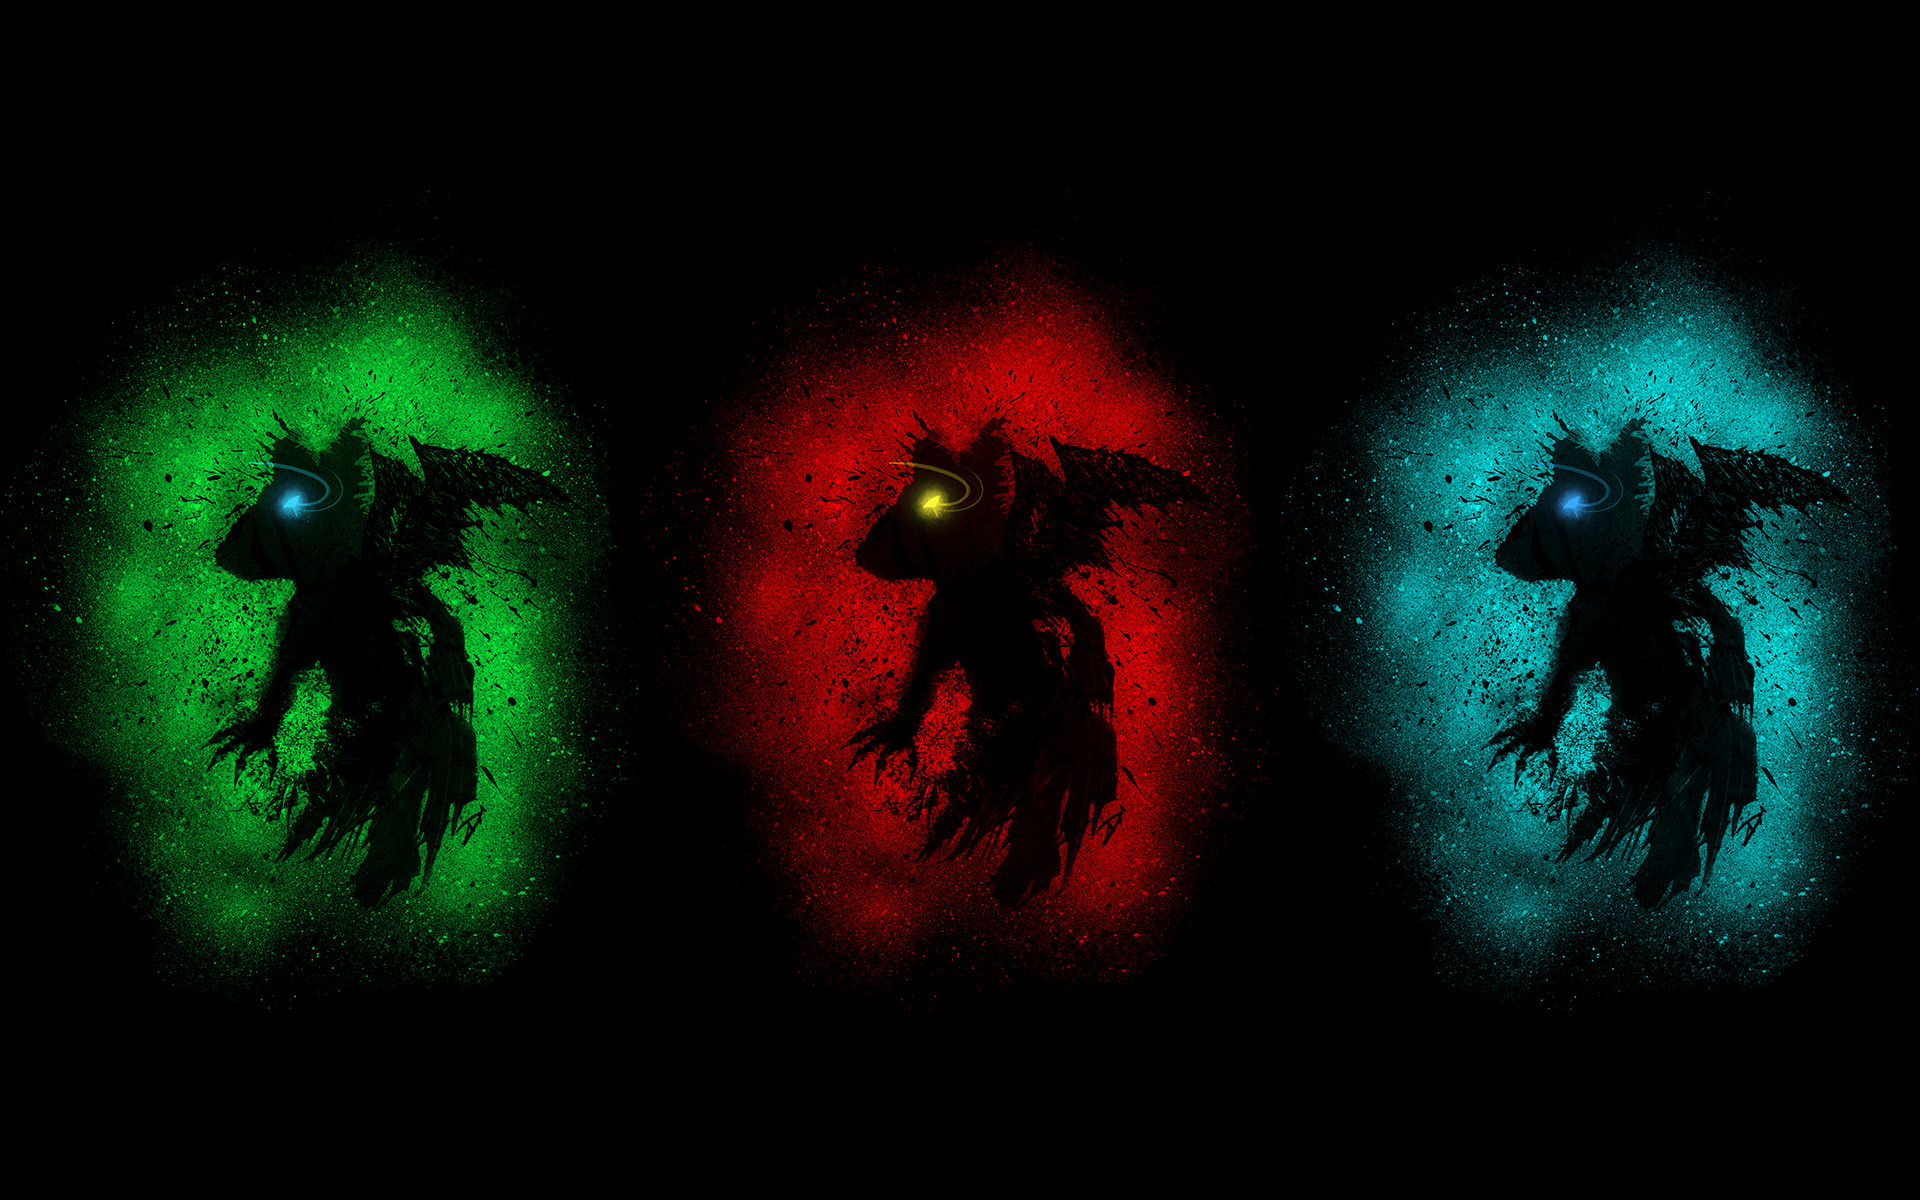 1920x1200 Rat Demon - Wallpaper by Vorrin5 Rat Demon - Wallpaper by Vorrin5